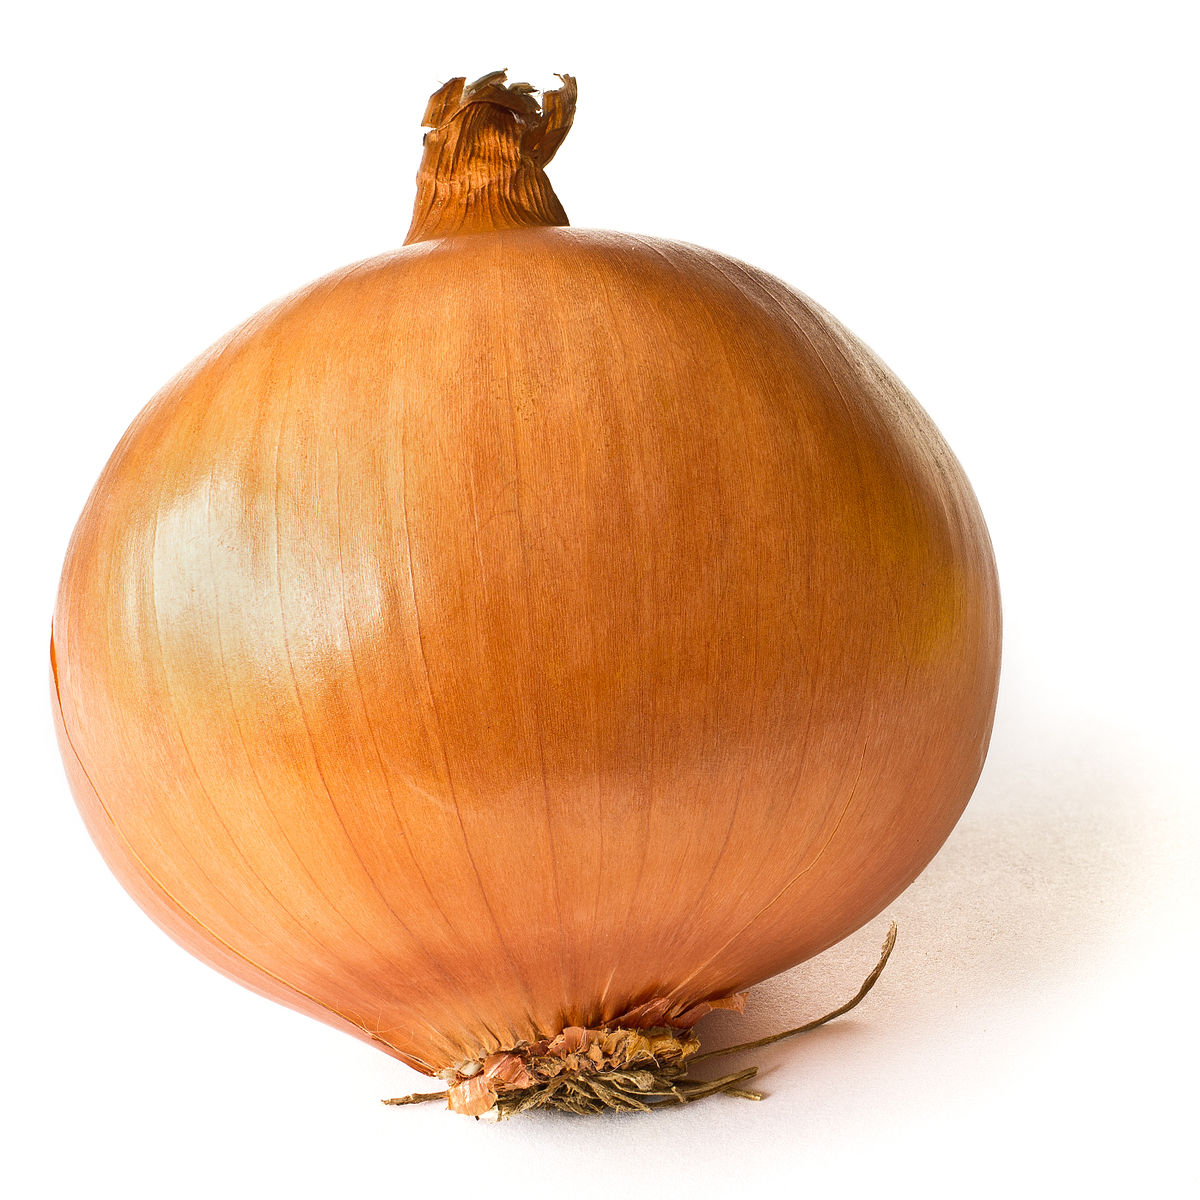 Image of Onions (1 = 150-200g)